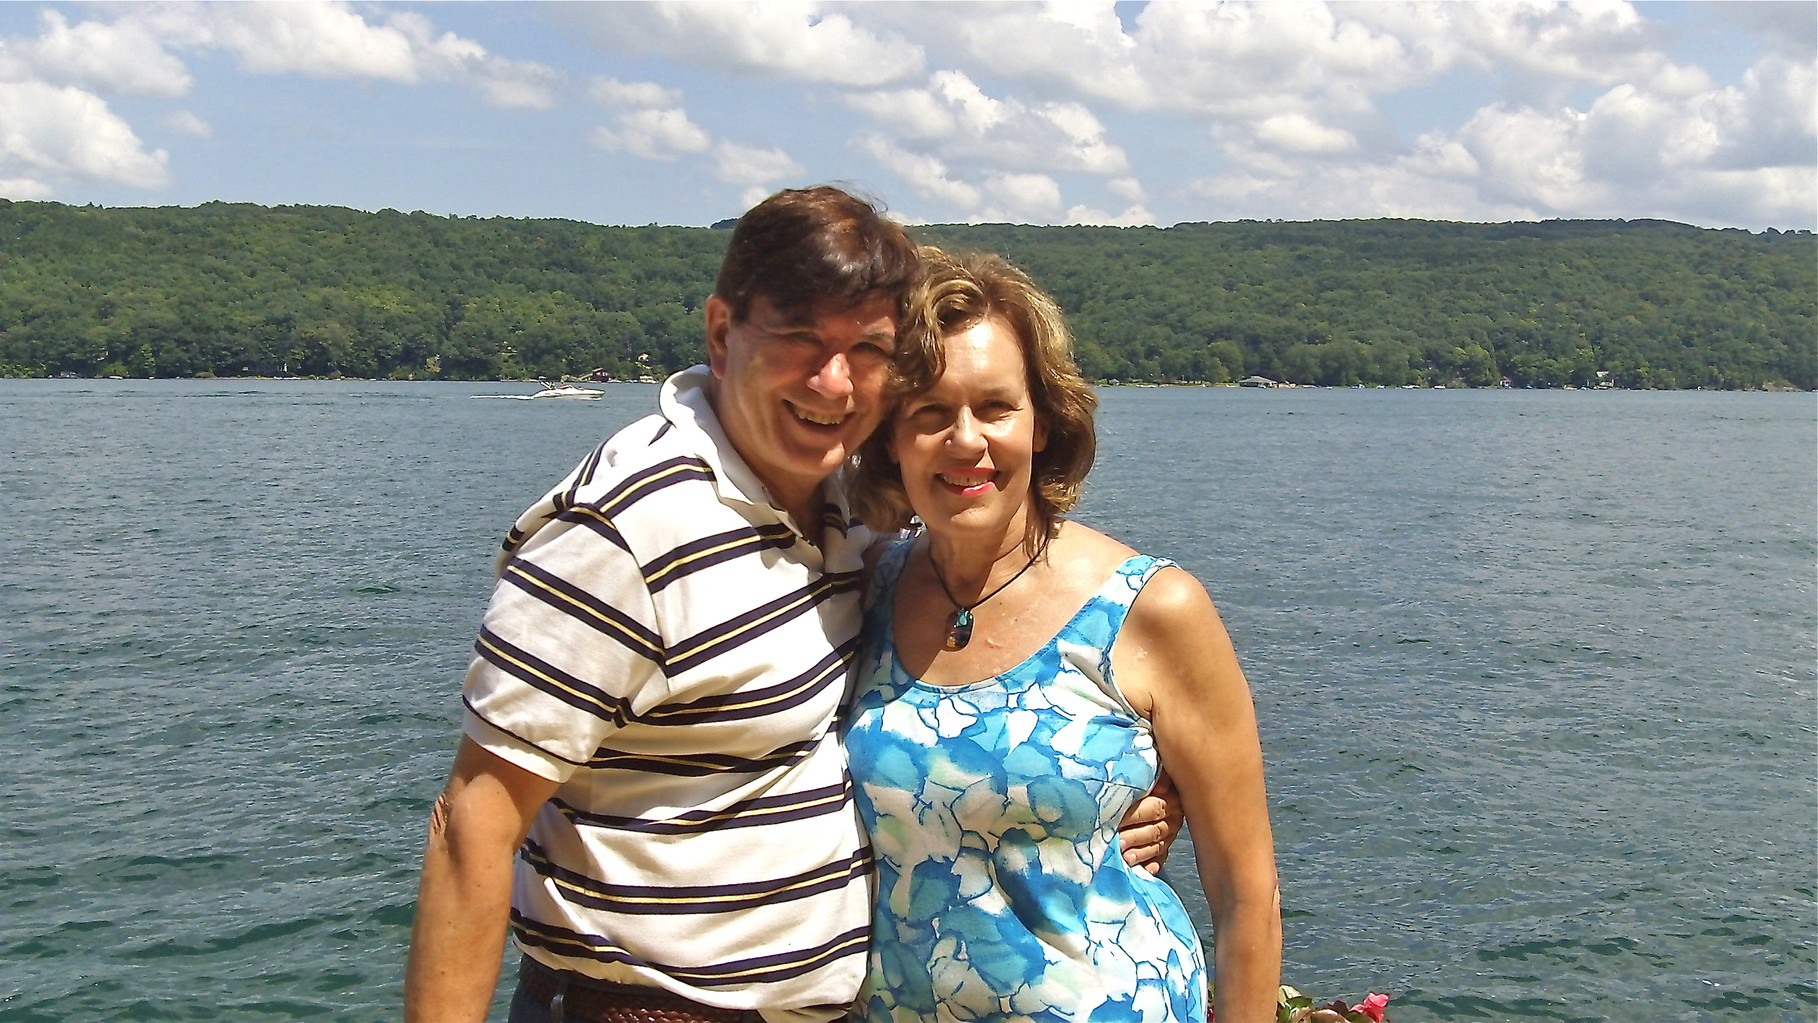 Lorraine & John on dock at Skaneateles, August, 2014